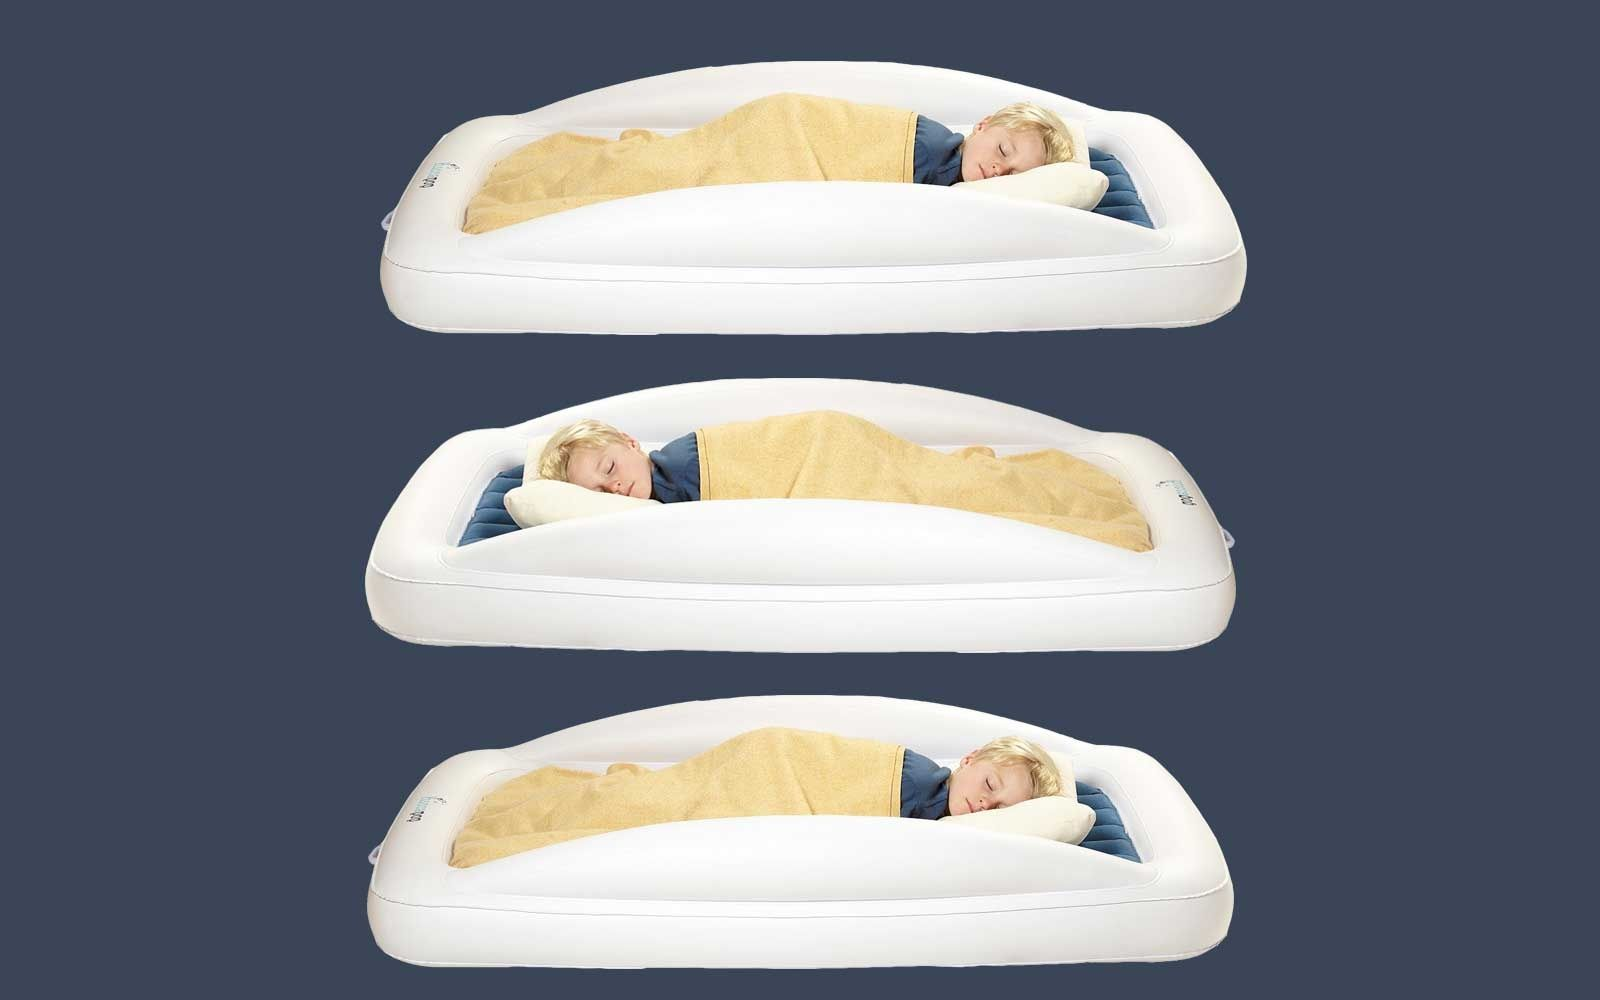 Compact Blow-up Mattress for Kids Is Necessary for Family ...